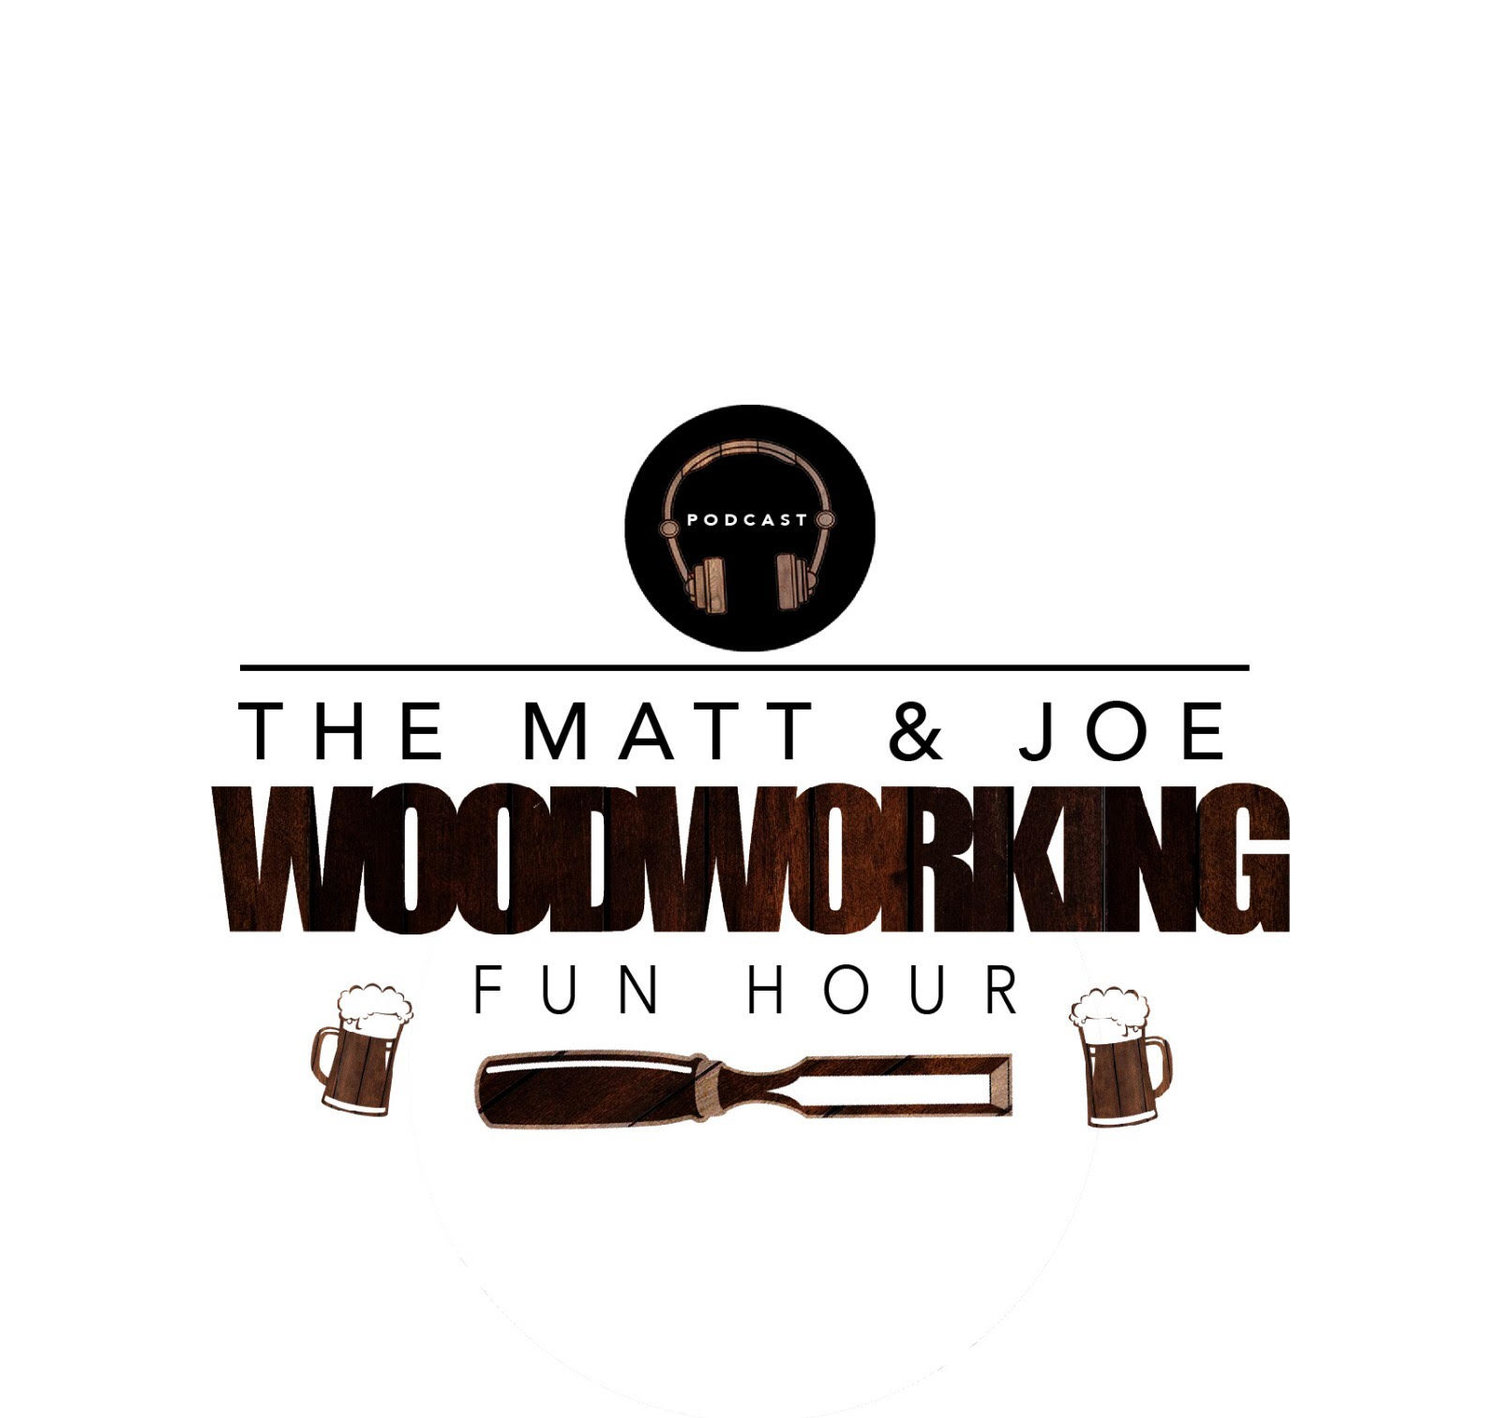 The Matt and Joe Woodworking Fun Hour